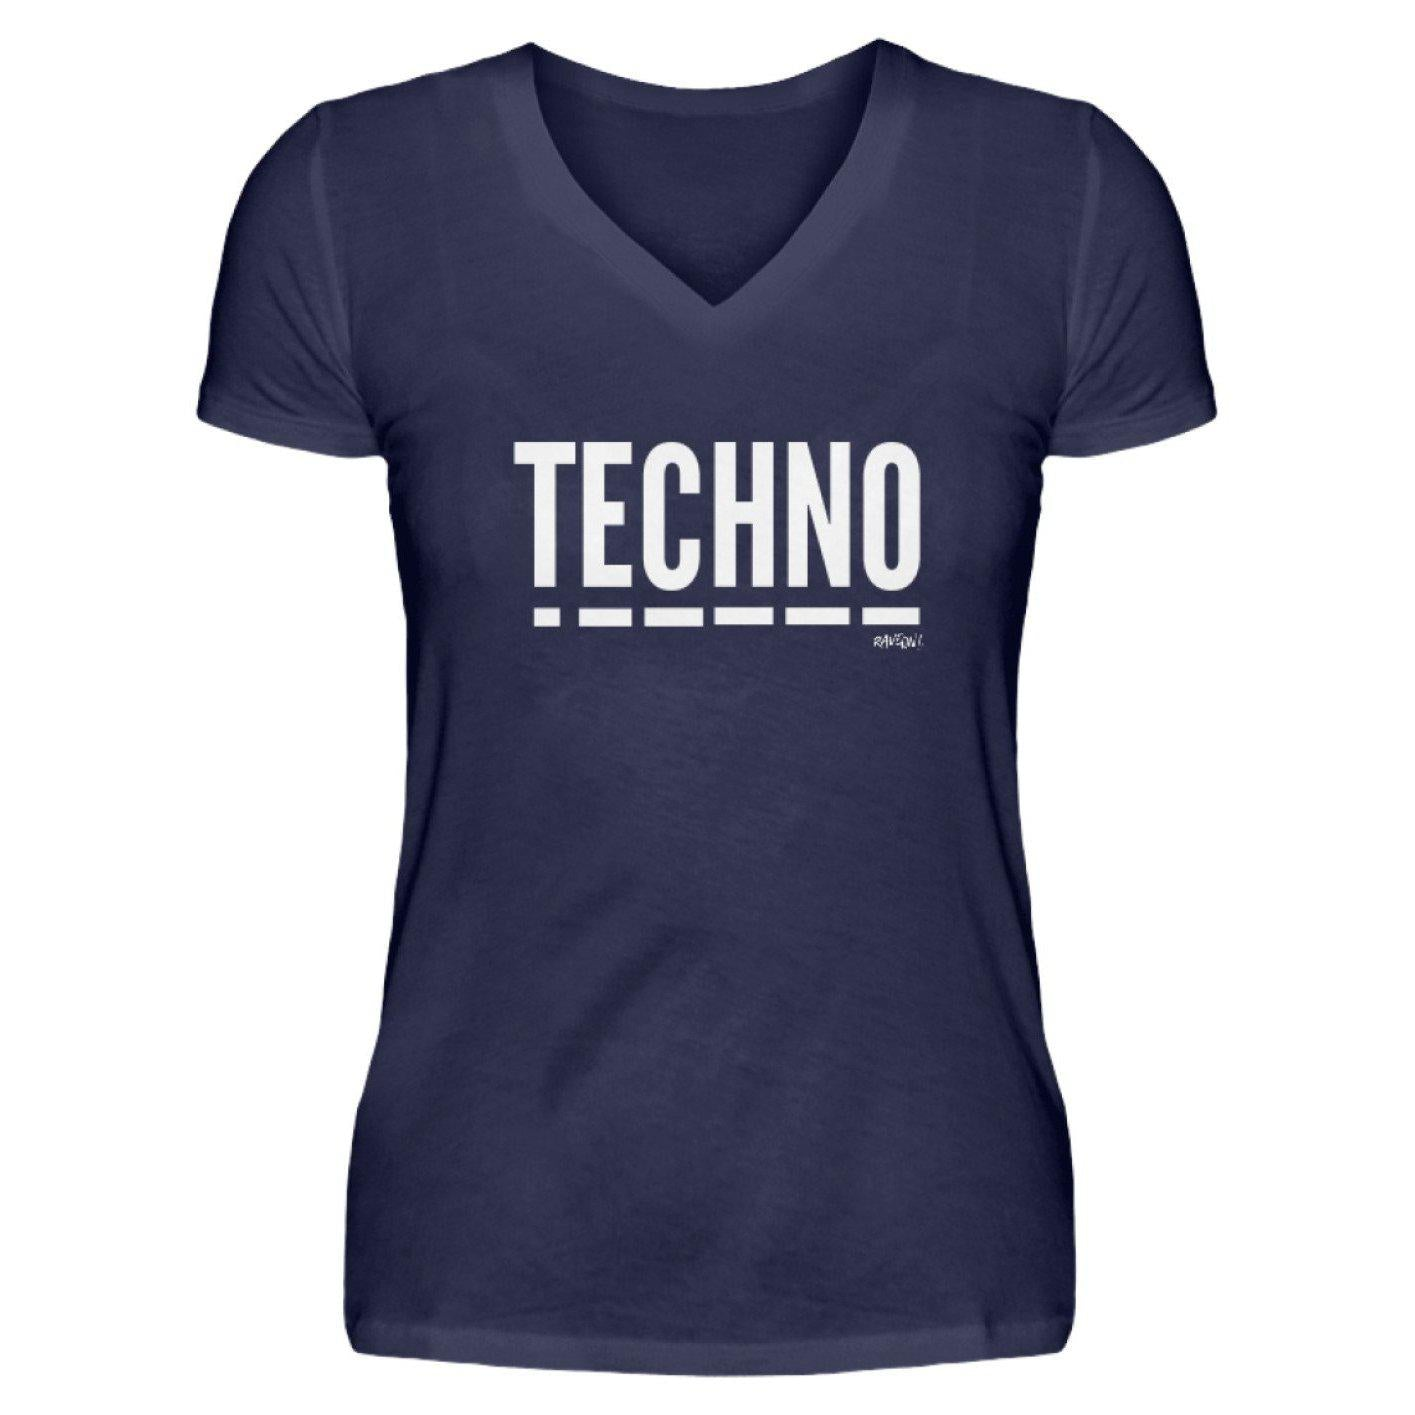 Techno Music - Rave On!® - V-Neck Damenshirt-V-Neck Damenshirt-Navy-S-Rave-On! I www.rave-on.shop I Deine Rave & Techno Szene Shop I Design - Techno Music - Rave On!®, music, Musik, rave, ravewear, techno, technowear - Sexy Festival Streetwear , Clubwear & Raver Style